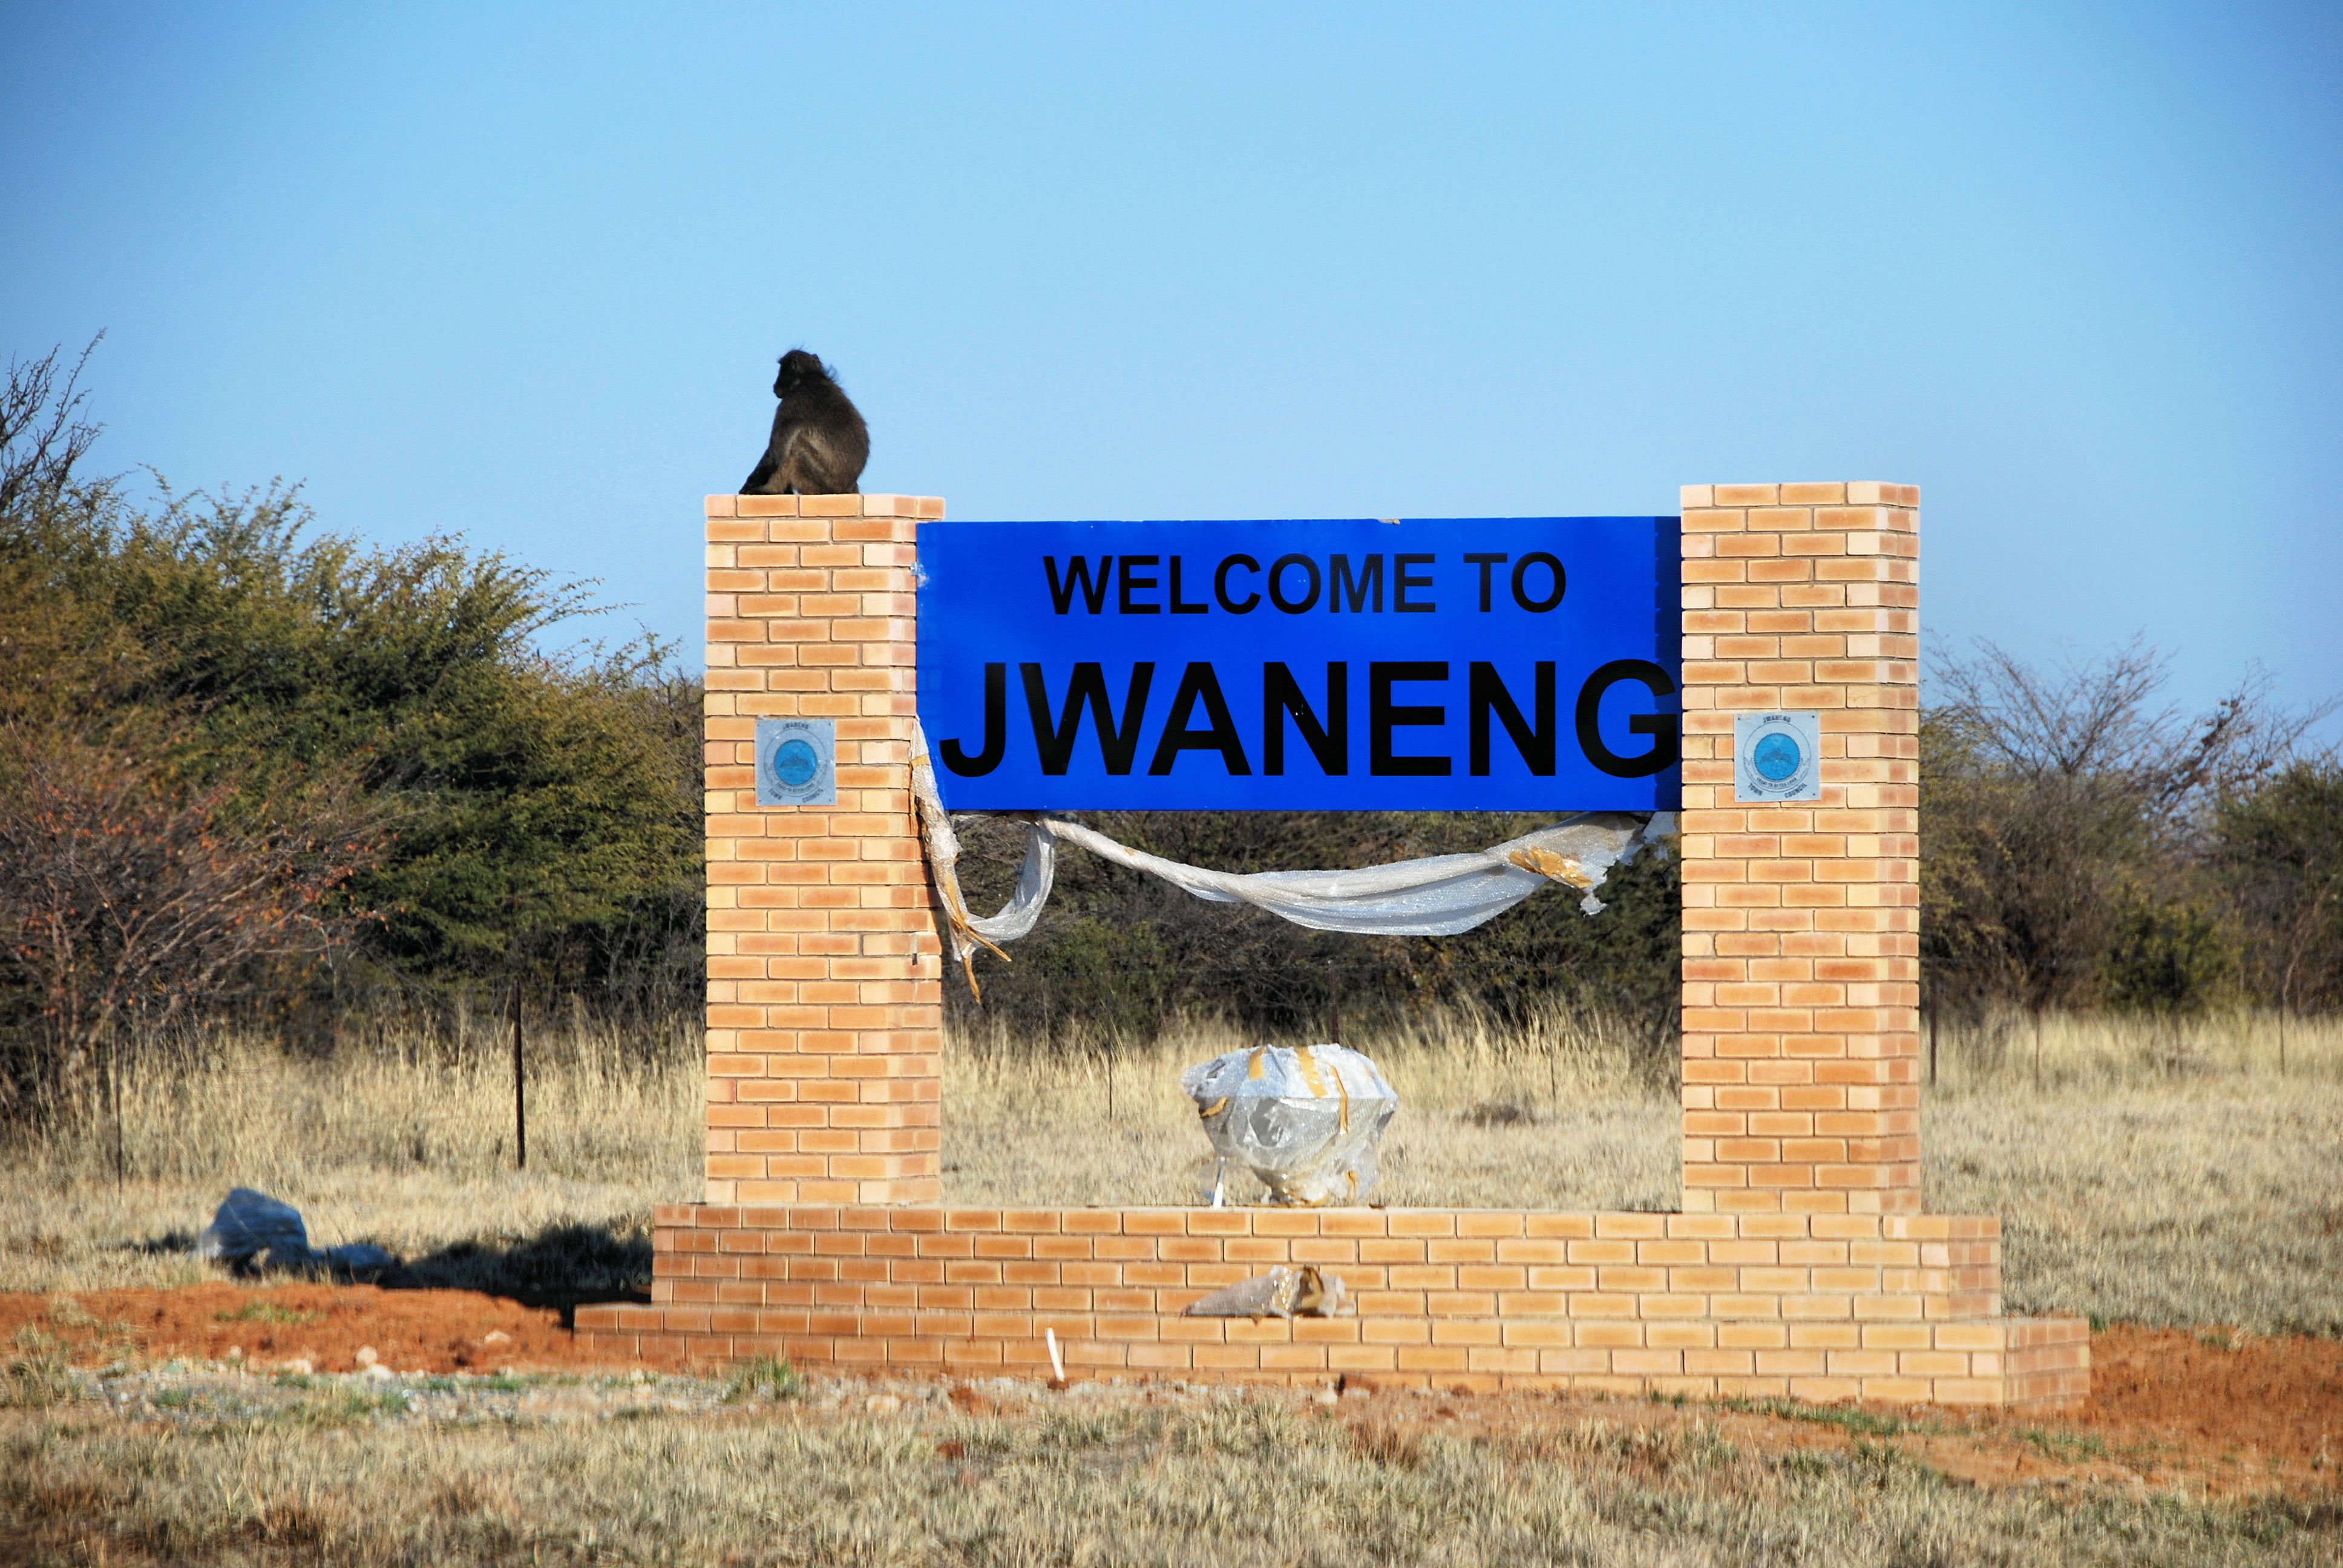 Jwaneng Botswana  city photo : Welcome to Jwaneng Wikipedia, the free encyclopedia